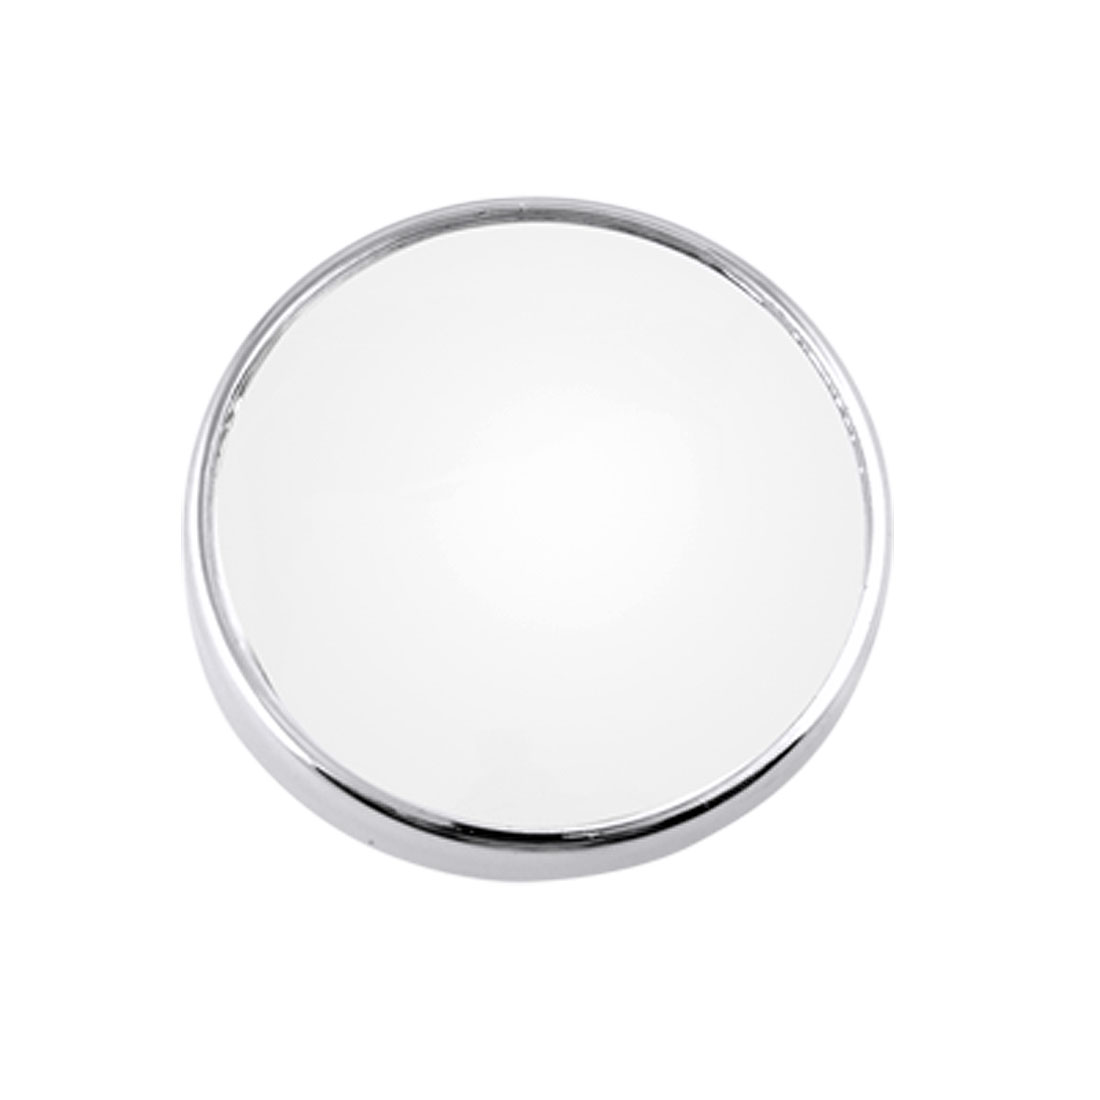 "3"" Silver Tone Car Auto Side Rearview Blind Spot Mirror"